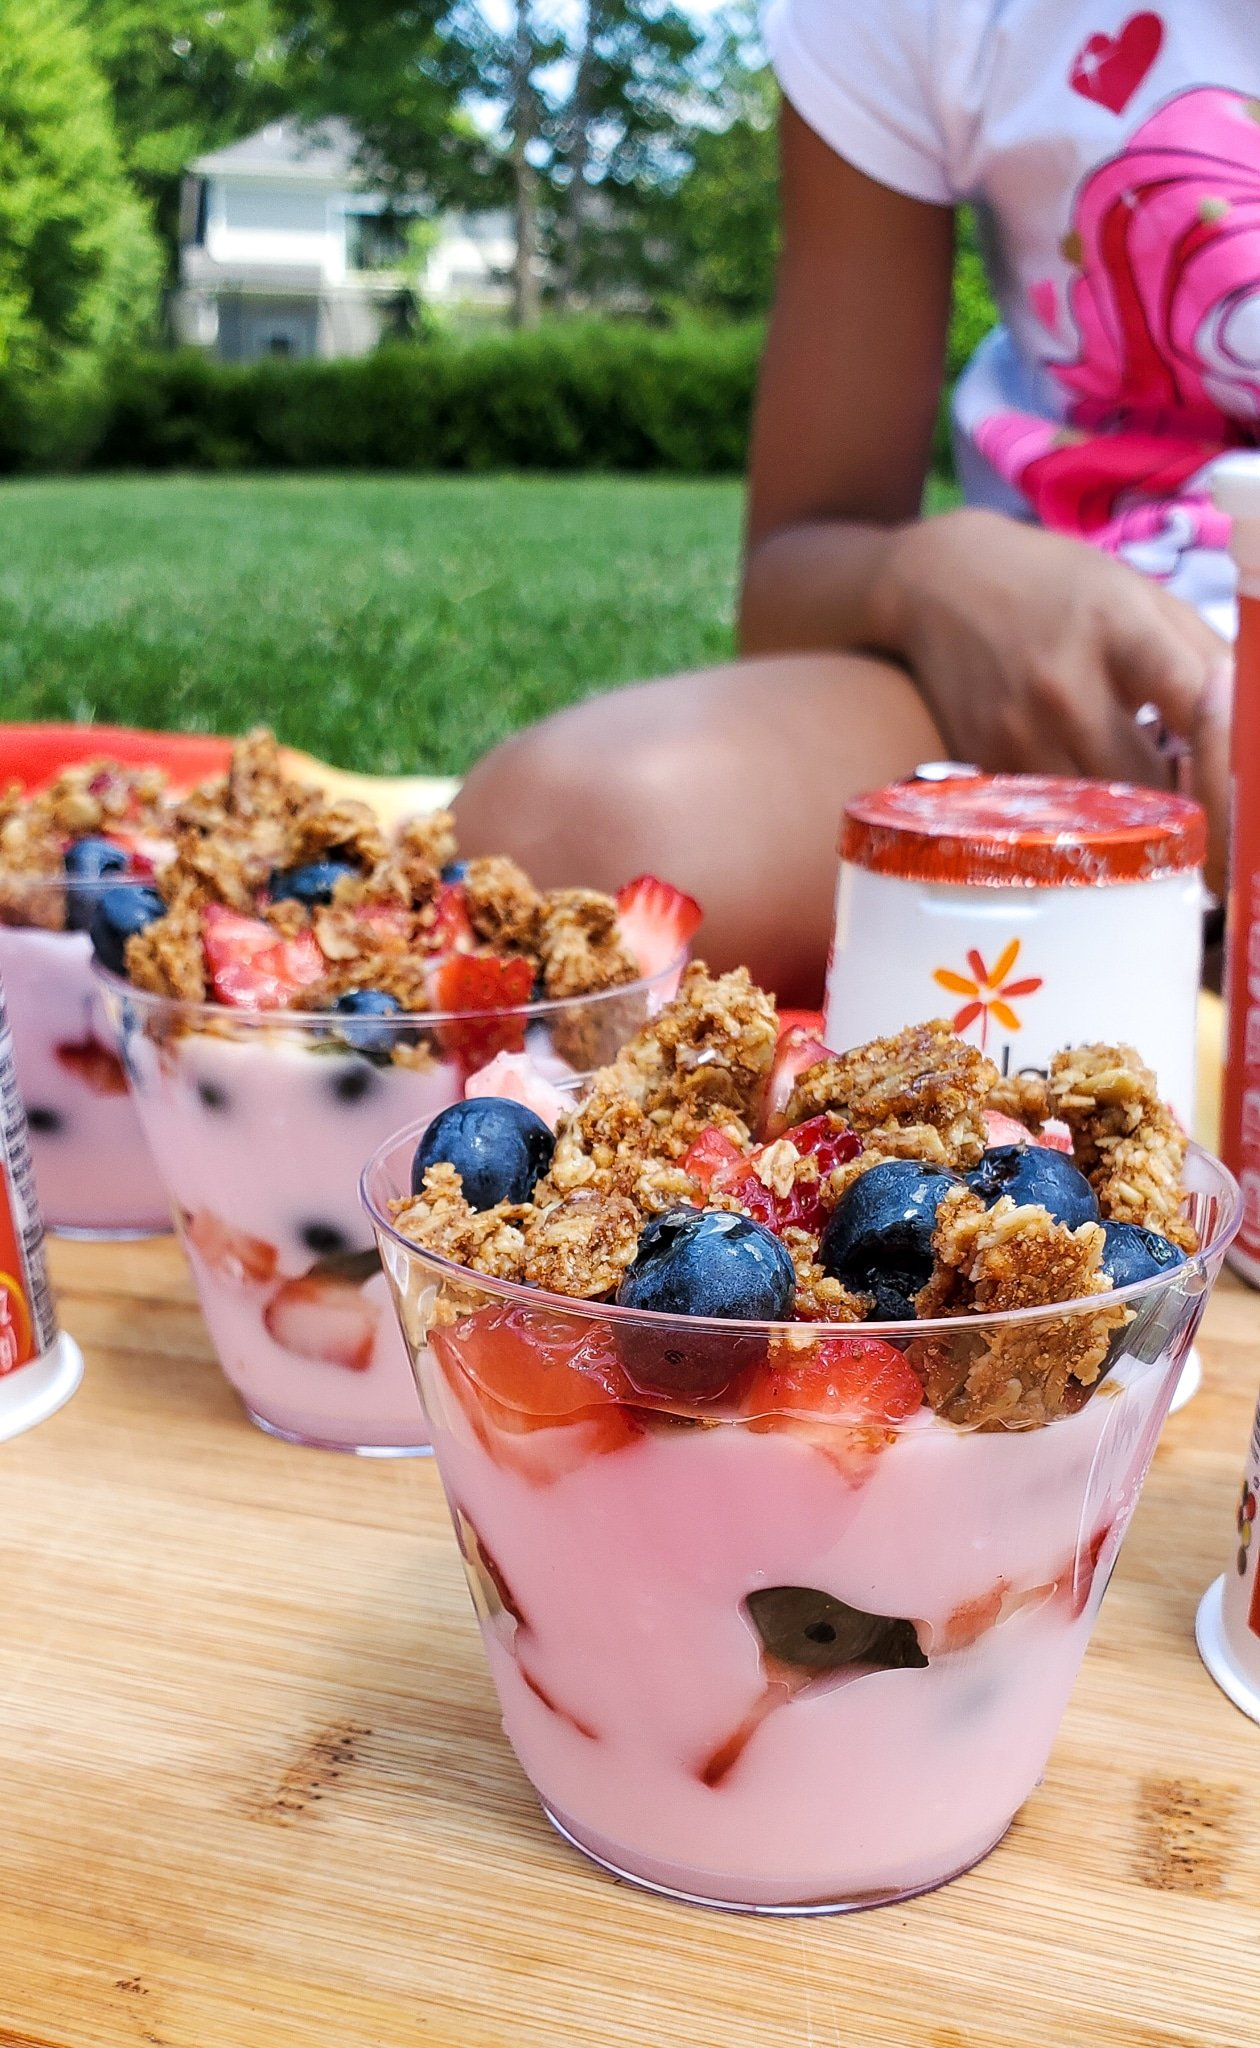 Backyard Picnic with Yoplait Parfaits. Grab your picnic baskets! It's time to host your very own backyard picnic featuring the foods your family loves. No need to leave home for this bunch of fun, just pick a date and then prep your picnic baskets.